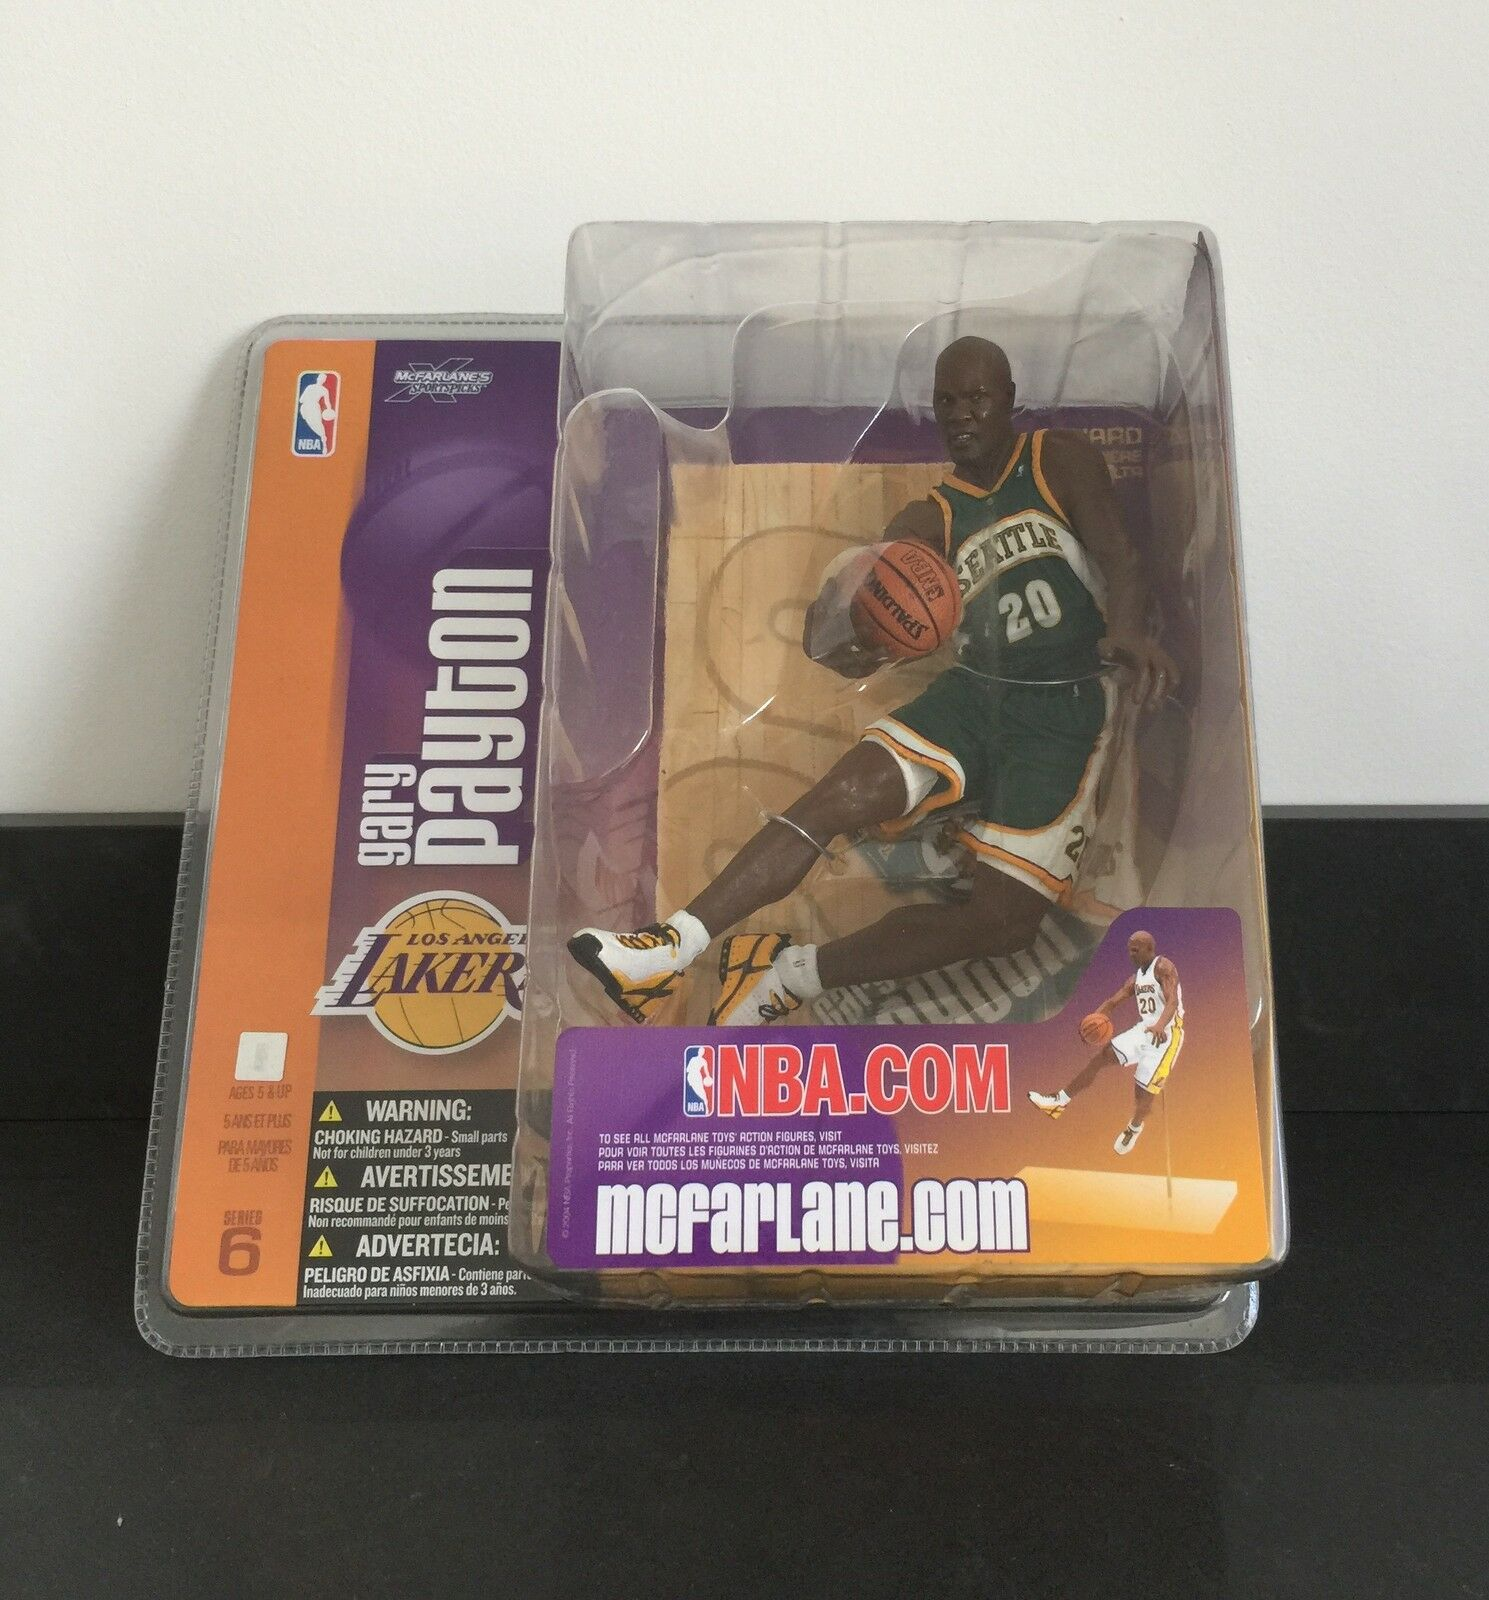 GARY PAYTON NBA SERIES 6 MCFARLANE SEATTLE SUPERSONICS VARIANT ERROR 1 OF A KIND